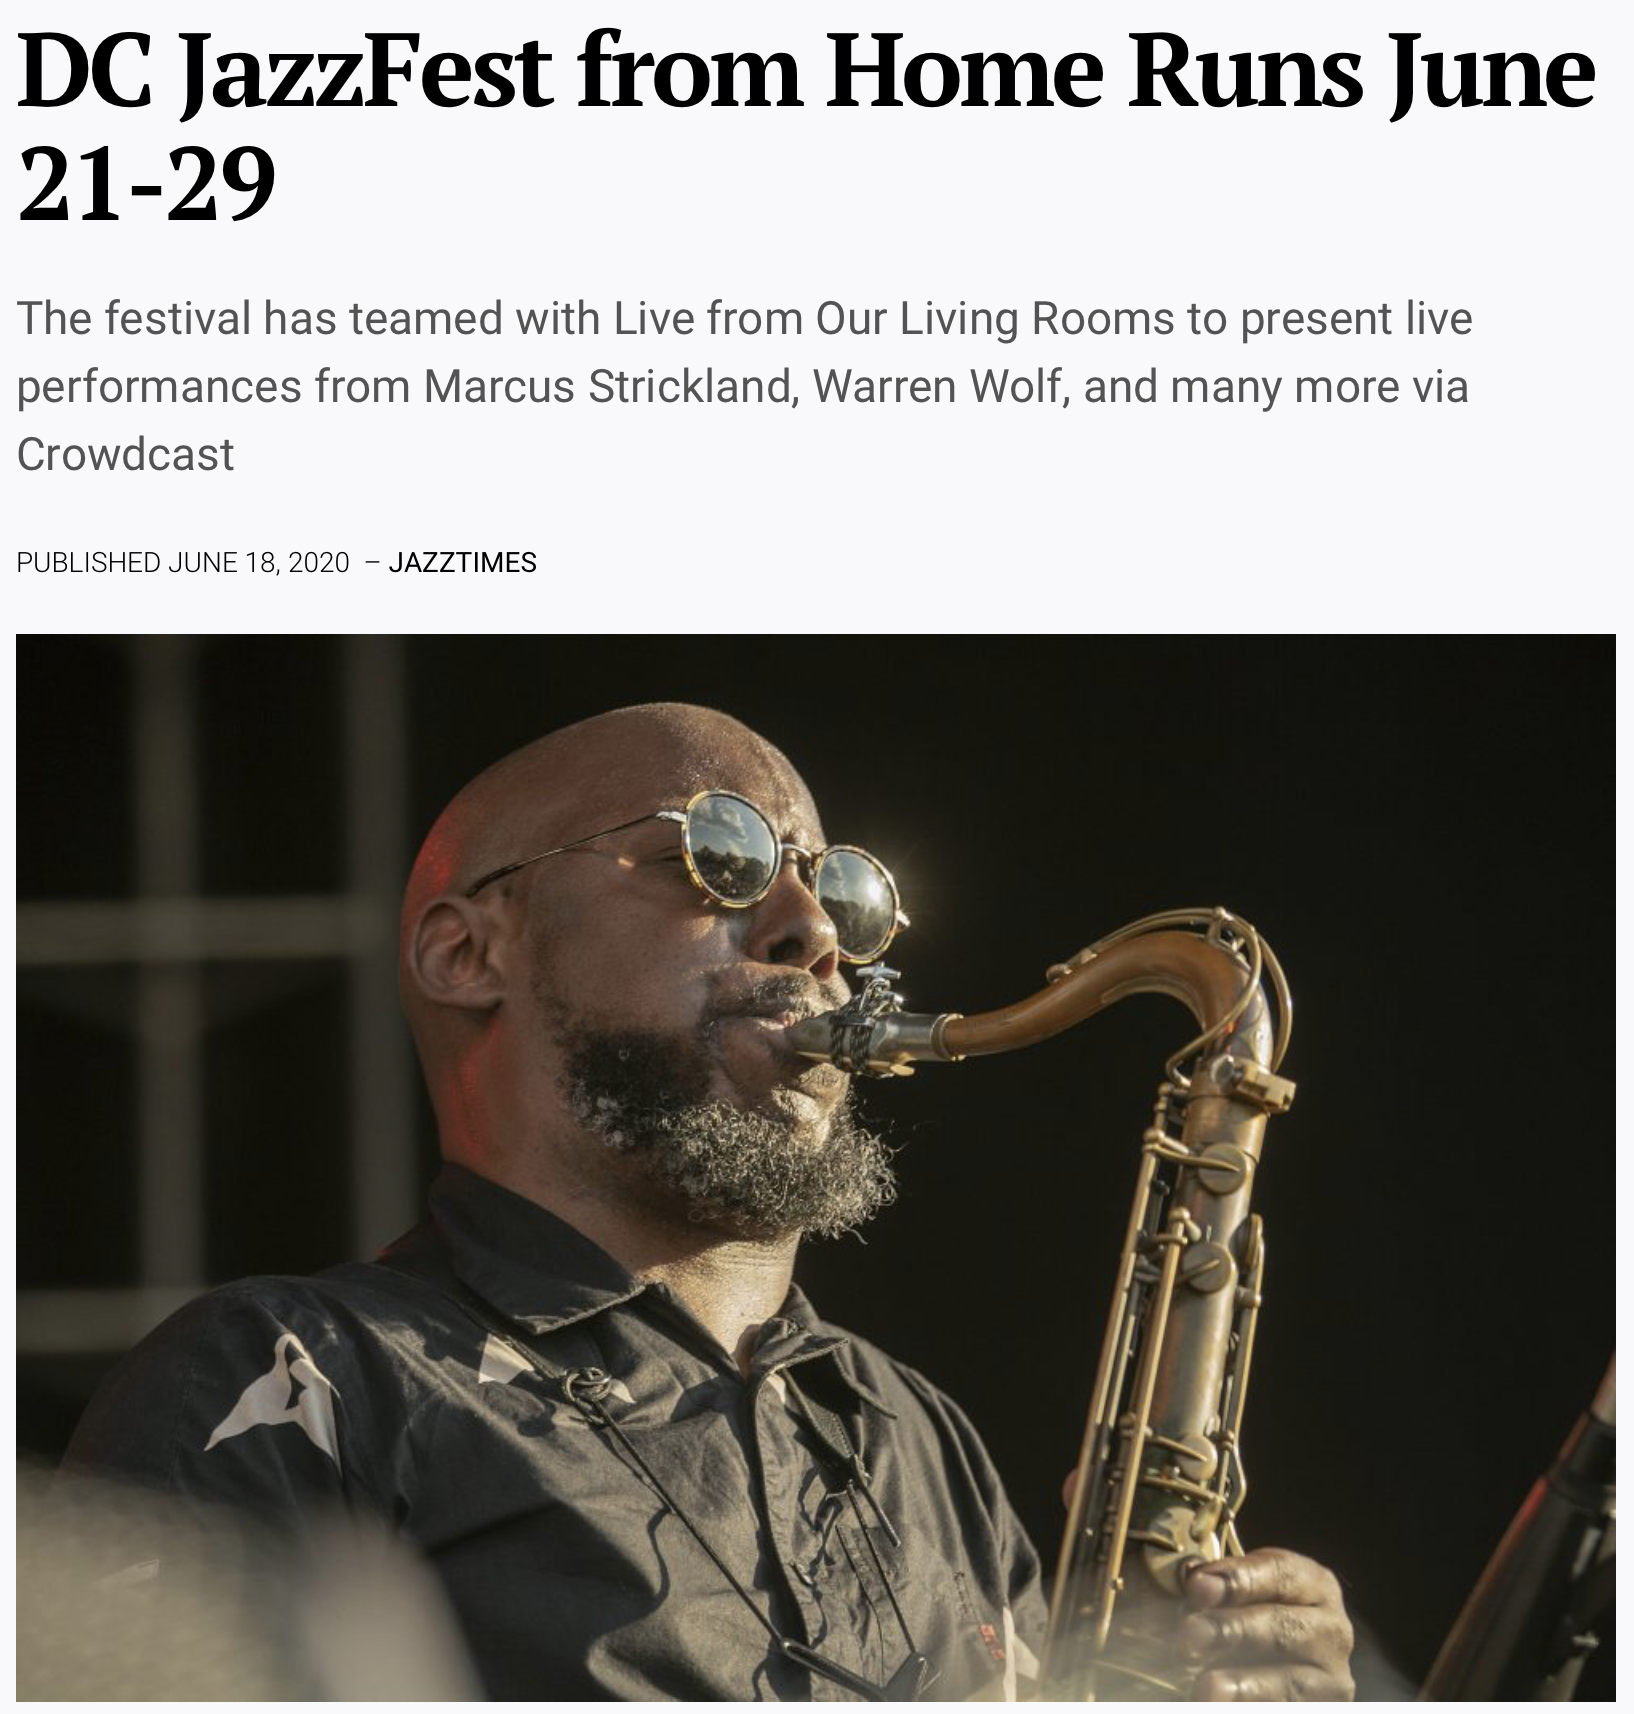 ANNOUNCEMENT: Live From Our Living Rooms & DC Jazz Fest From Home Runs June 21-29 – JazzTimes